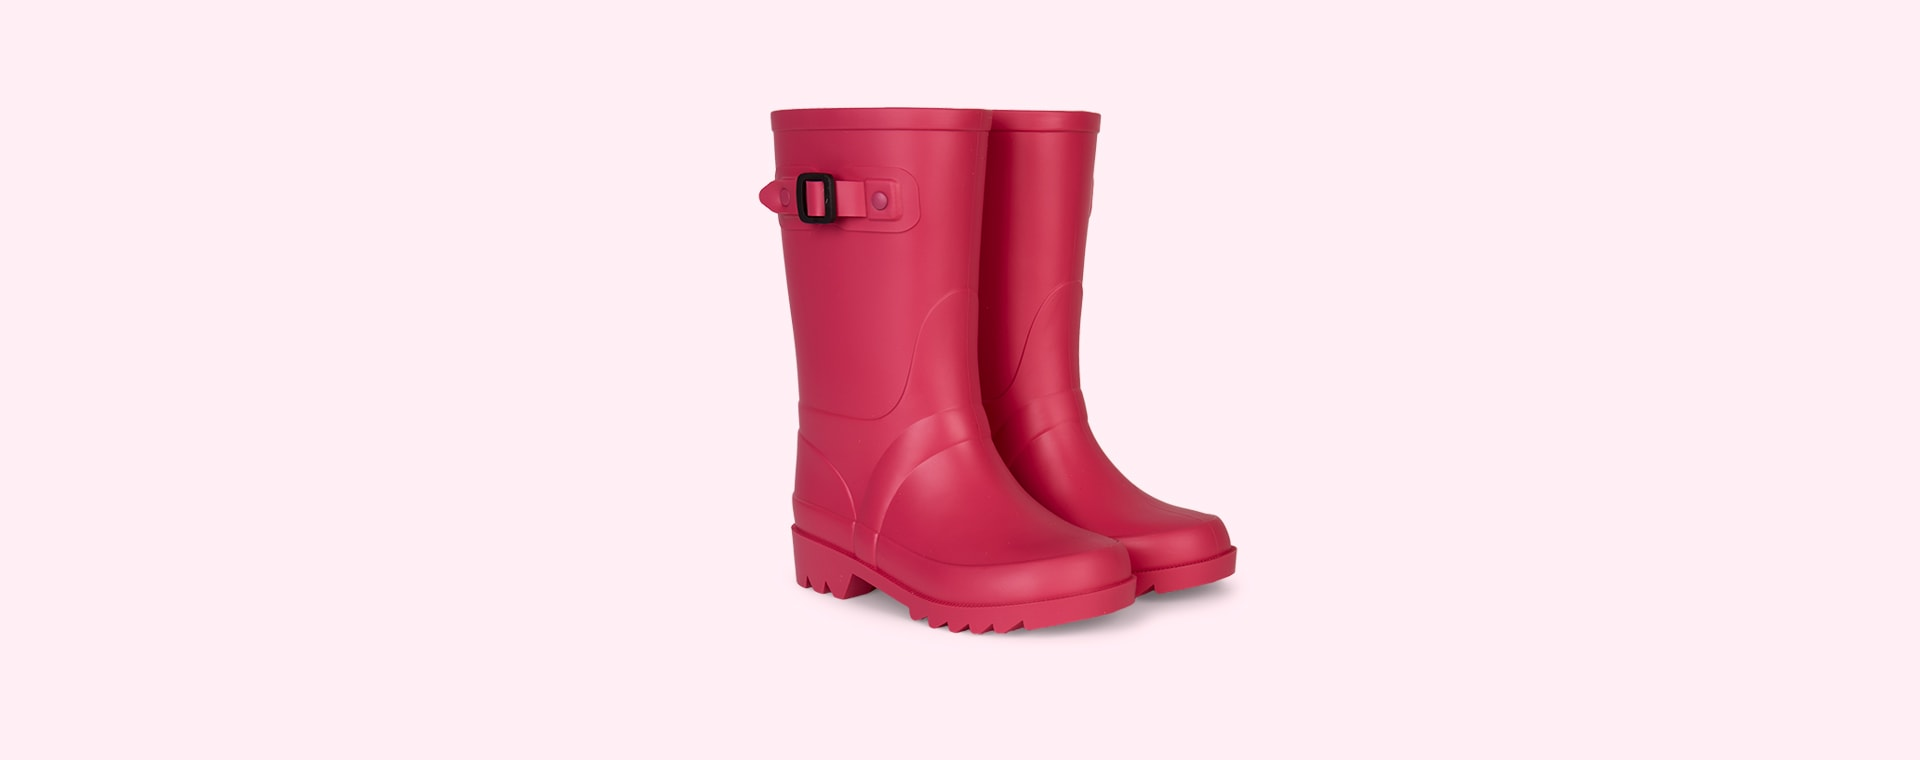 Fuscia igor Pitter Wellies